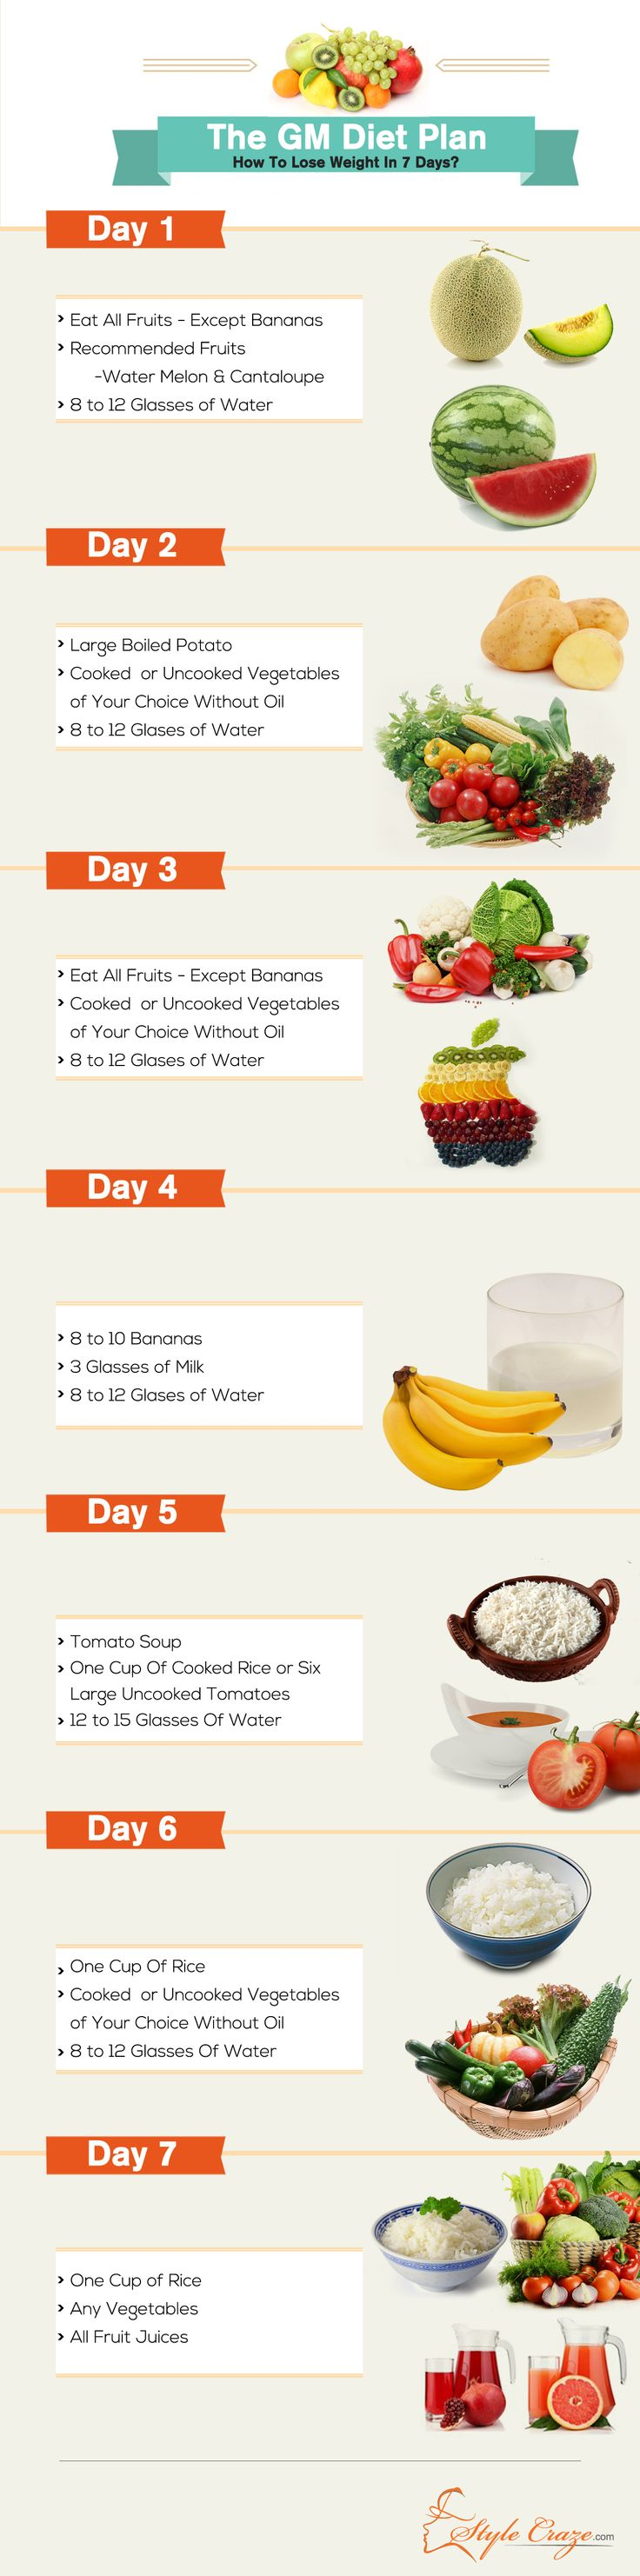 How to lose weight in 7 days diet plan | Lose Weight